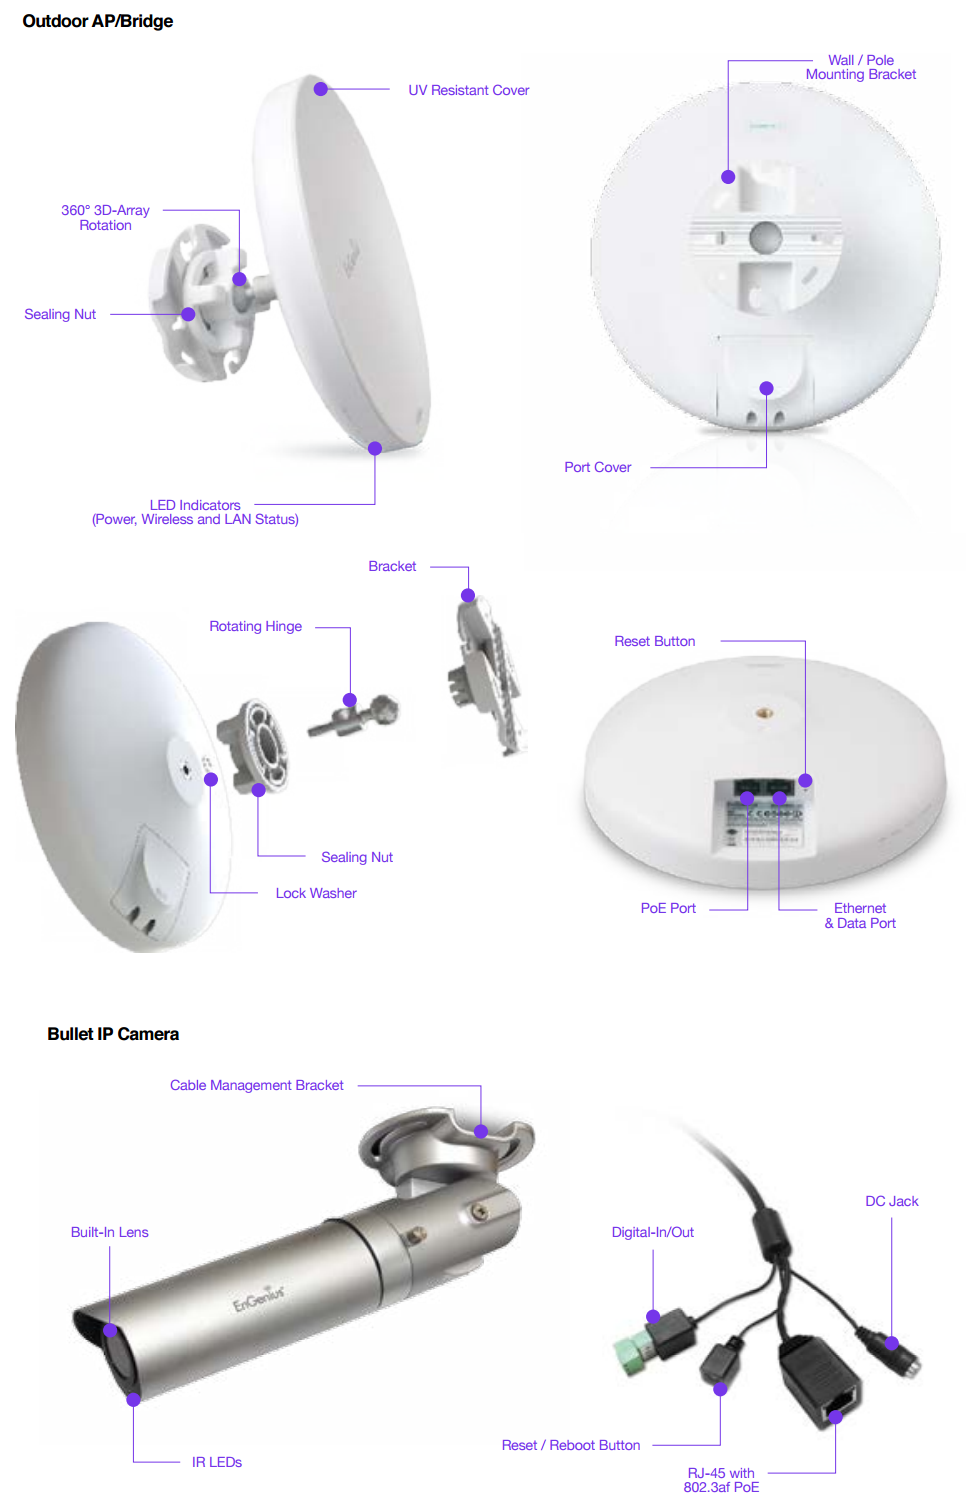 Outdoor AP/Bridge and Bullet IP Camera